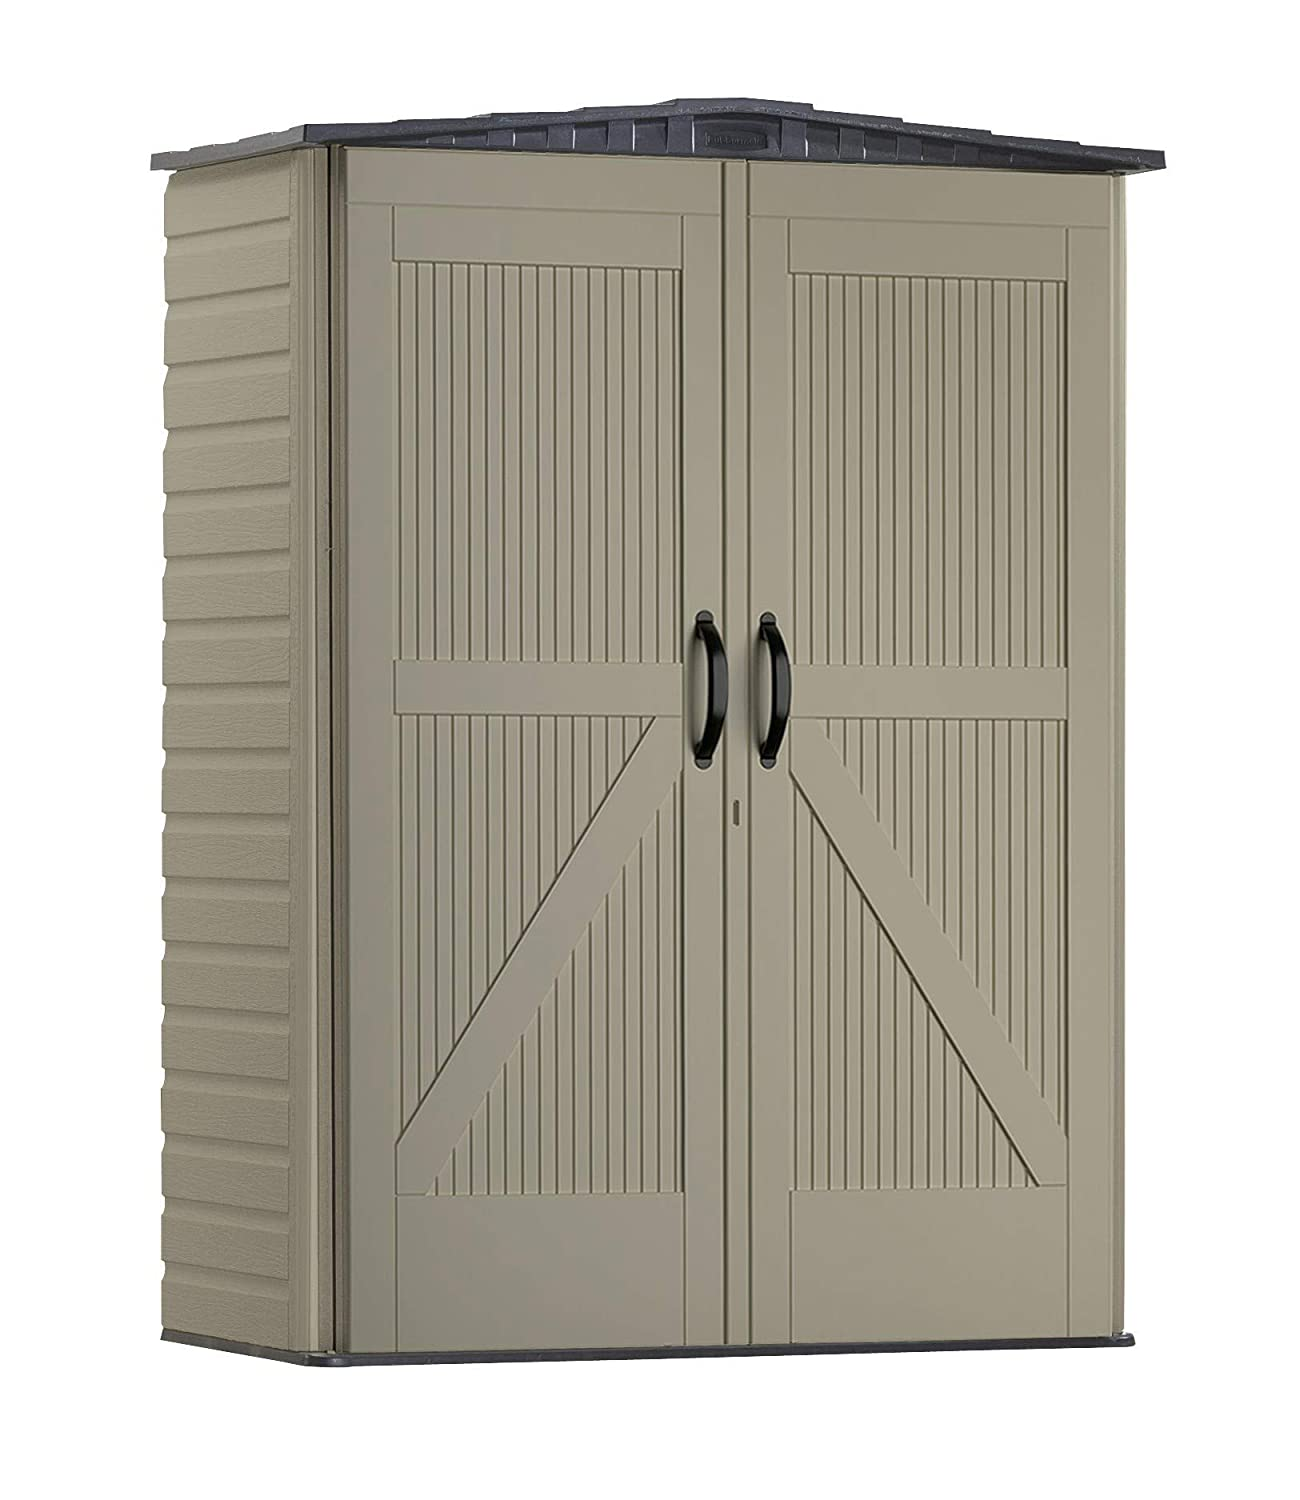 Rubbermaid Roughneck Storage Shed, 5x2, Faint Maple and Brown